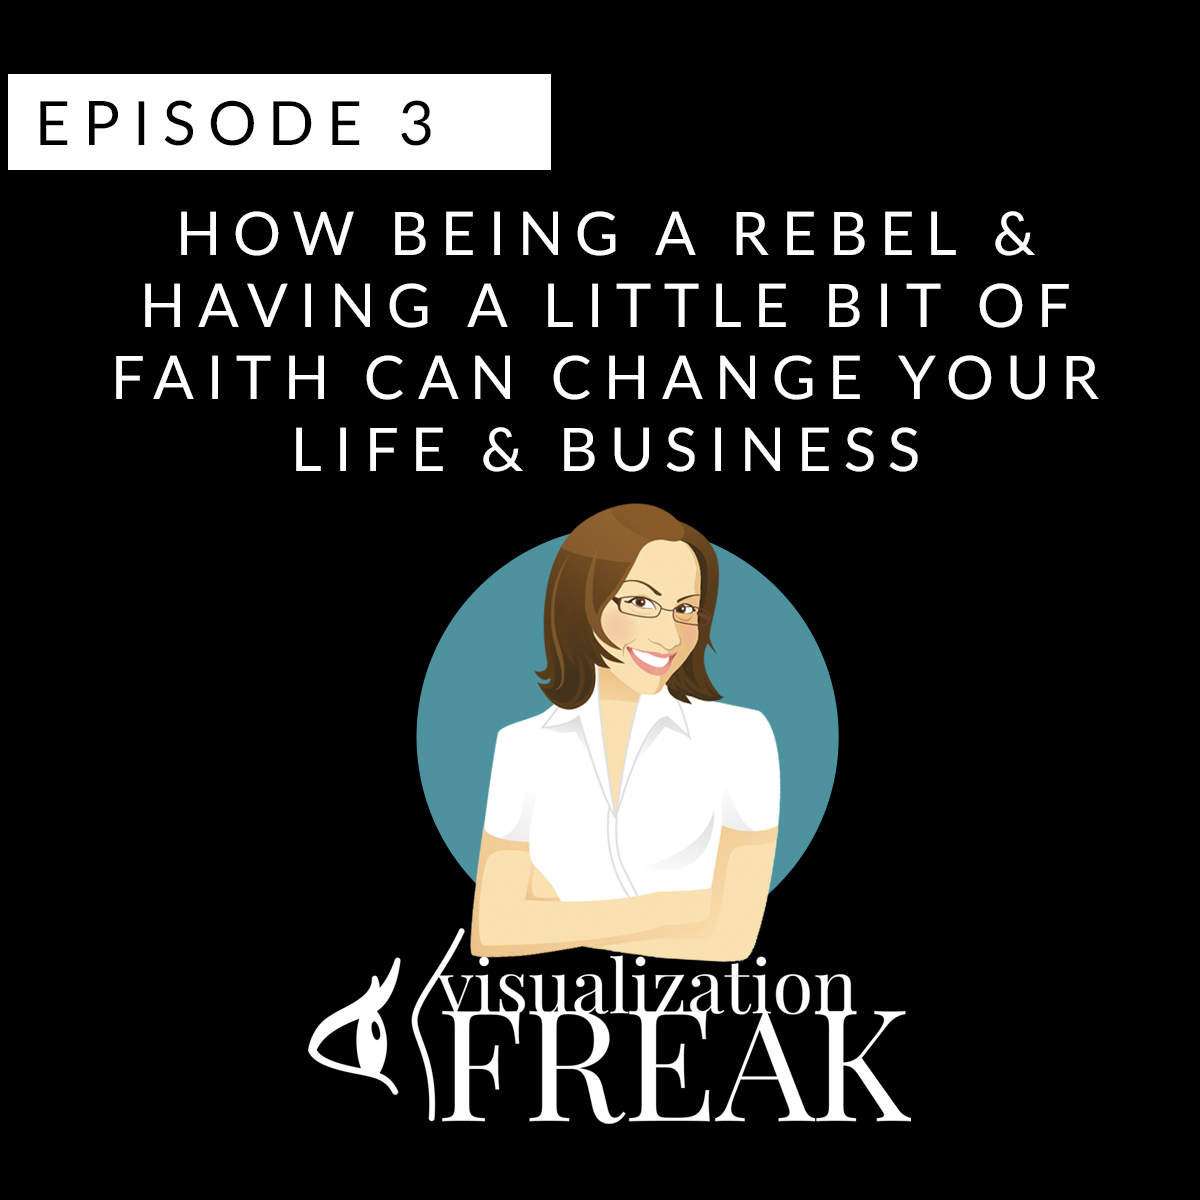 EPISODE 3: How being a rebel & having a little bit of faith can change your life & business